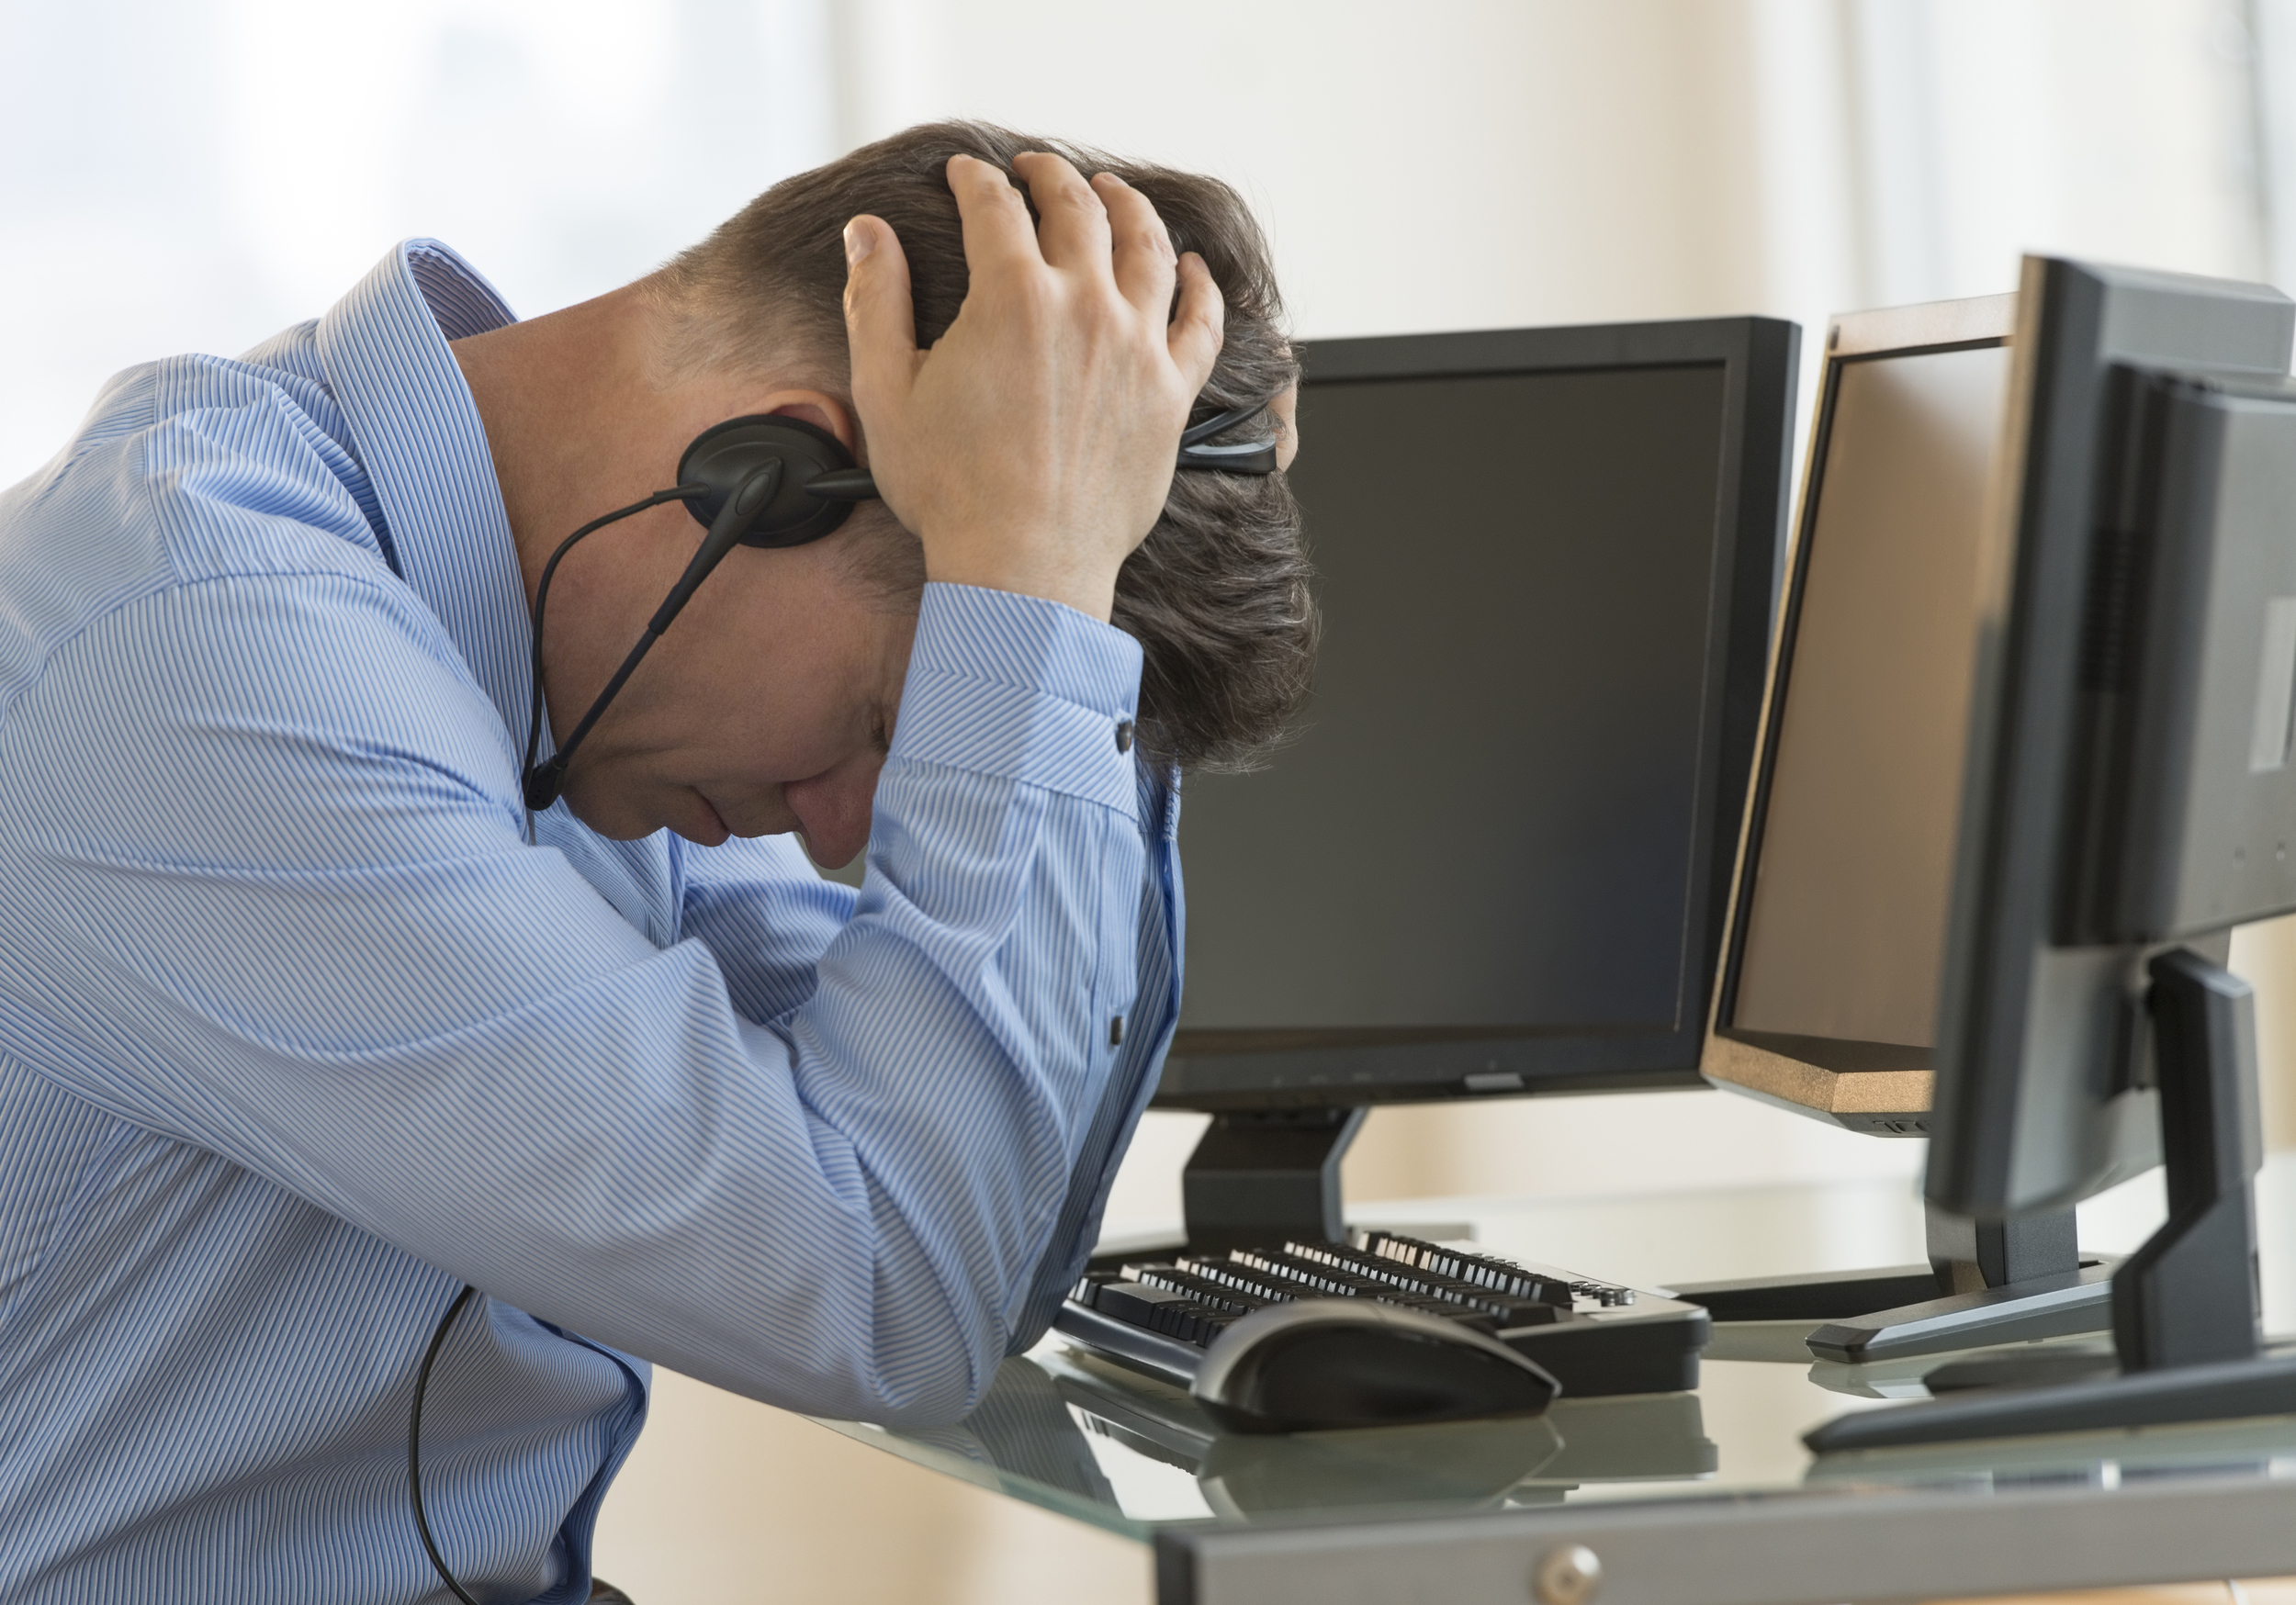 Stress is often ever-present in many forms of employment